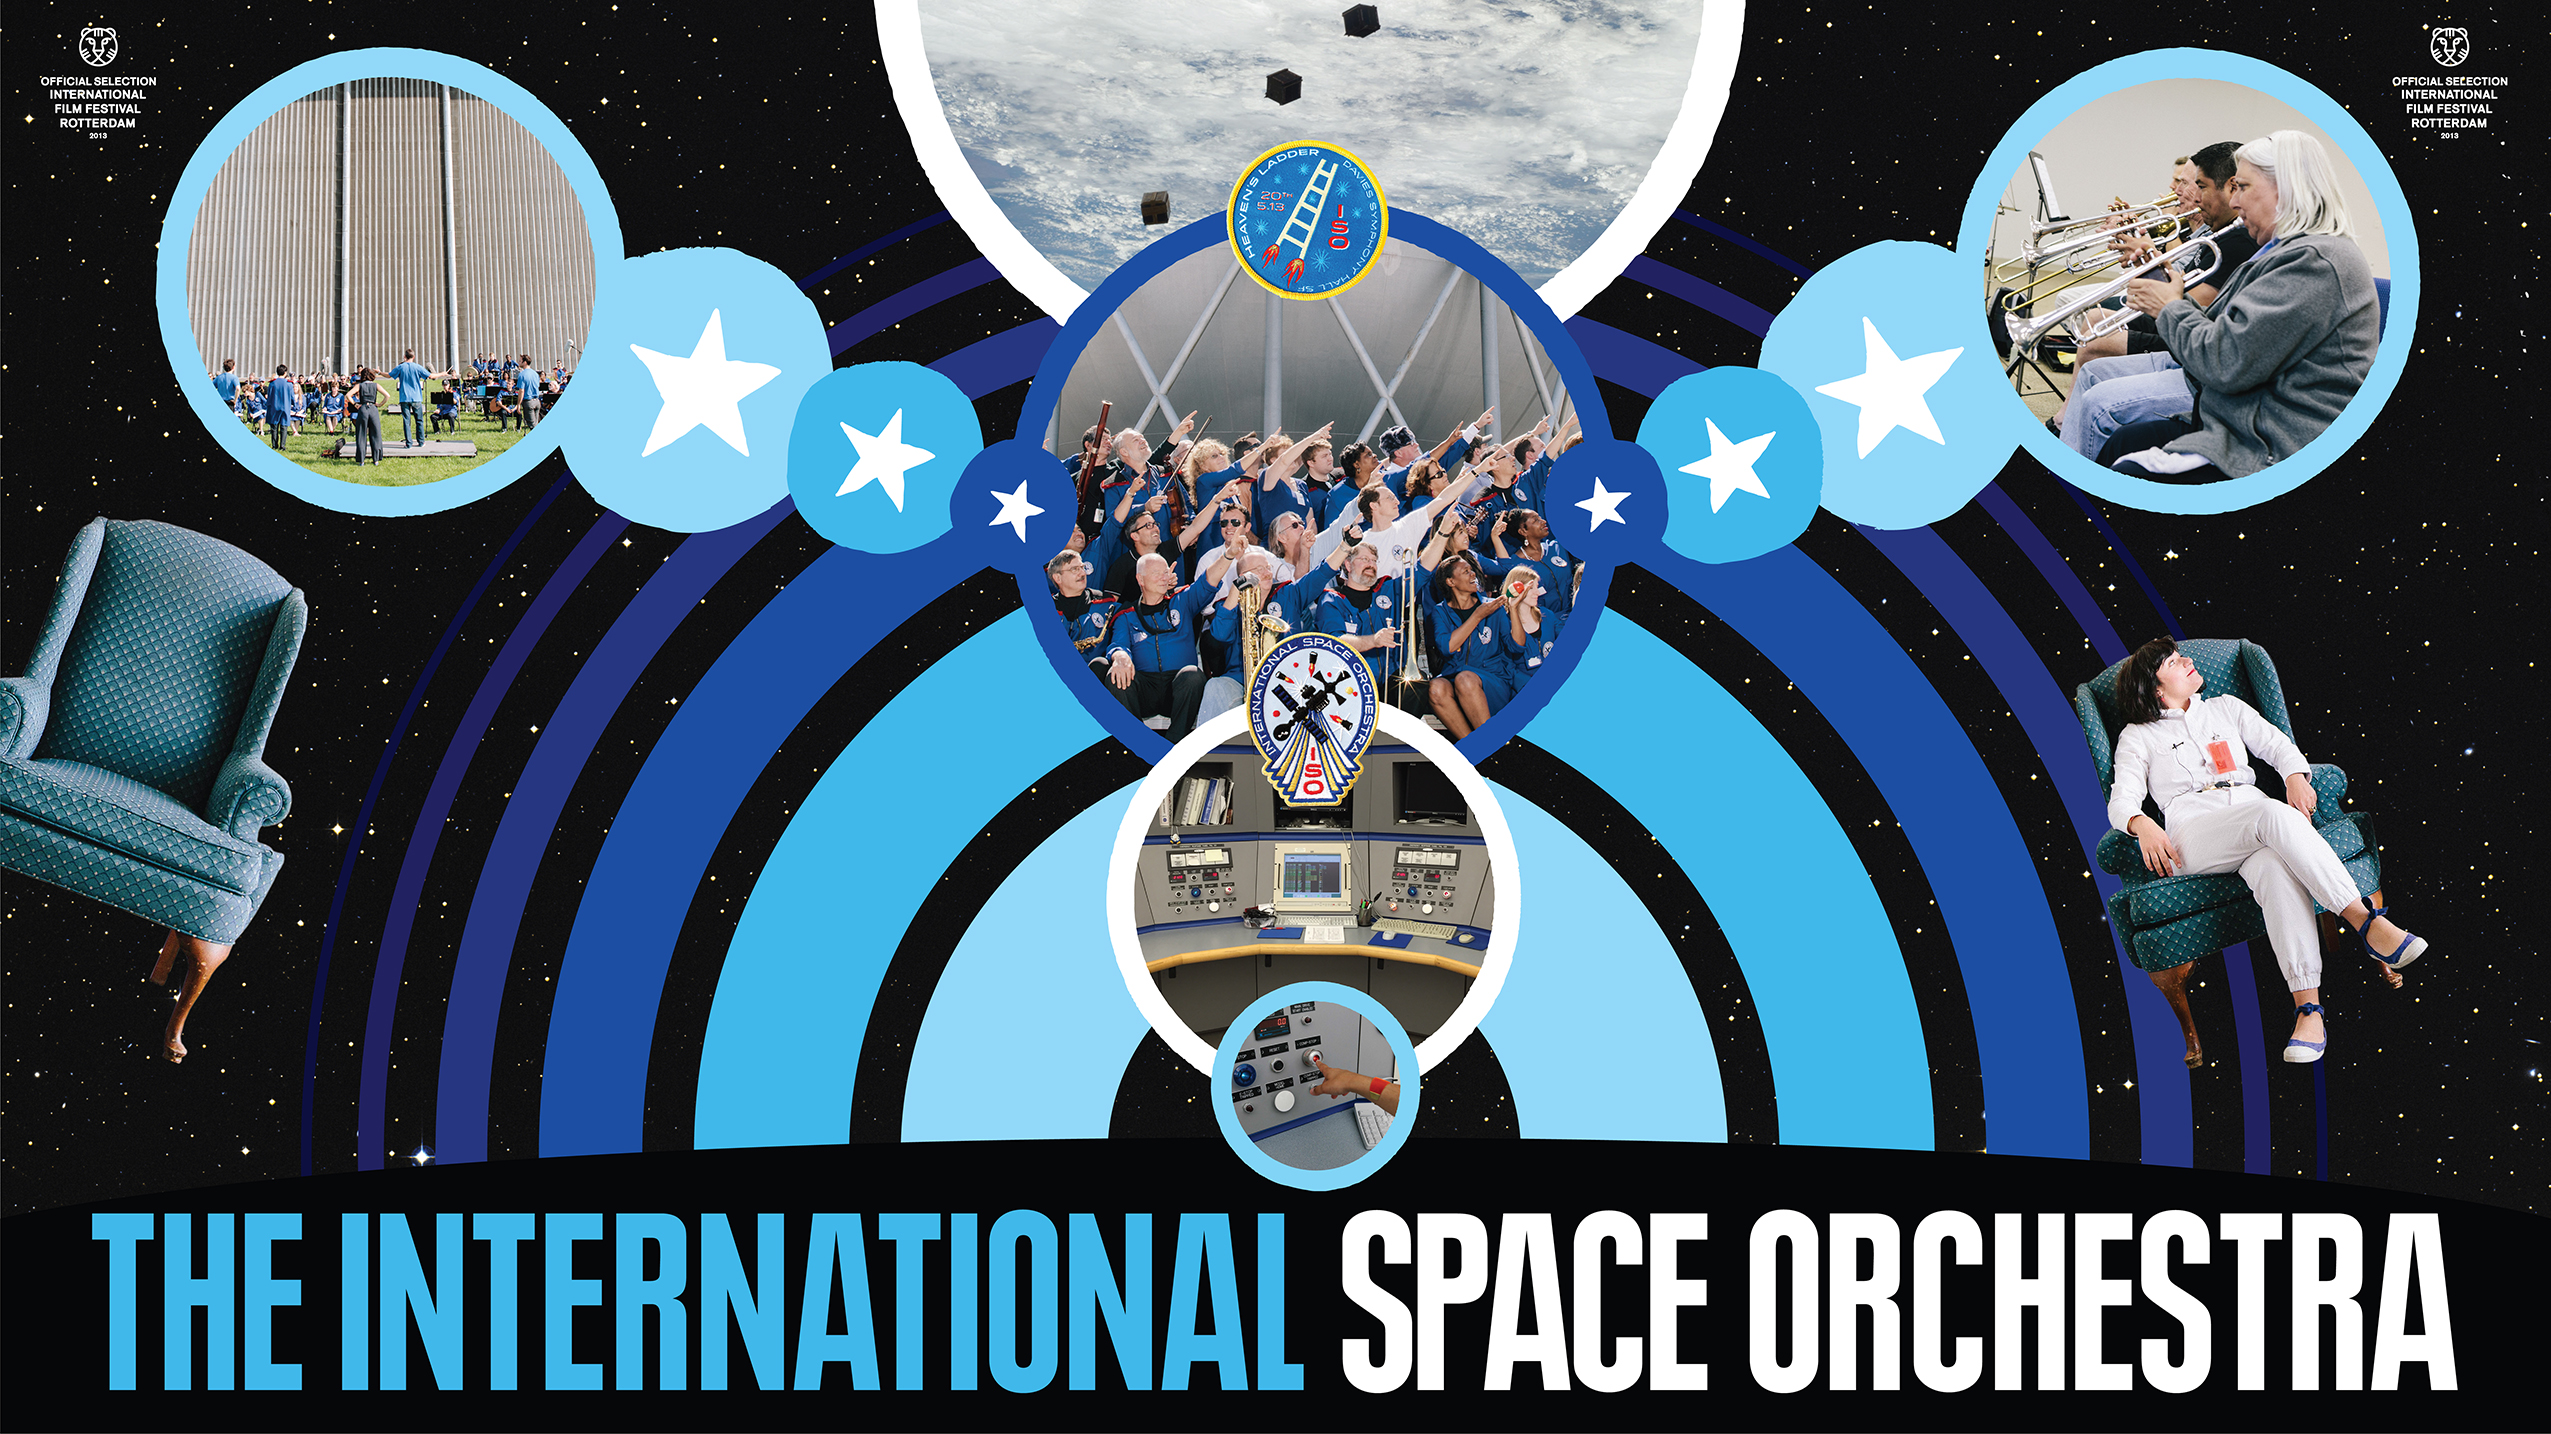 International Space Orchestra poster designed by Our Machine.